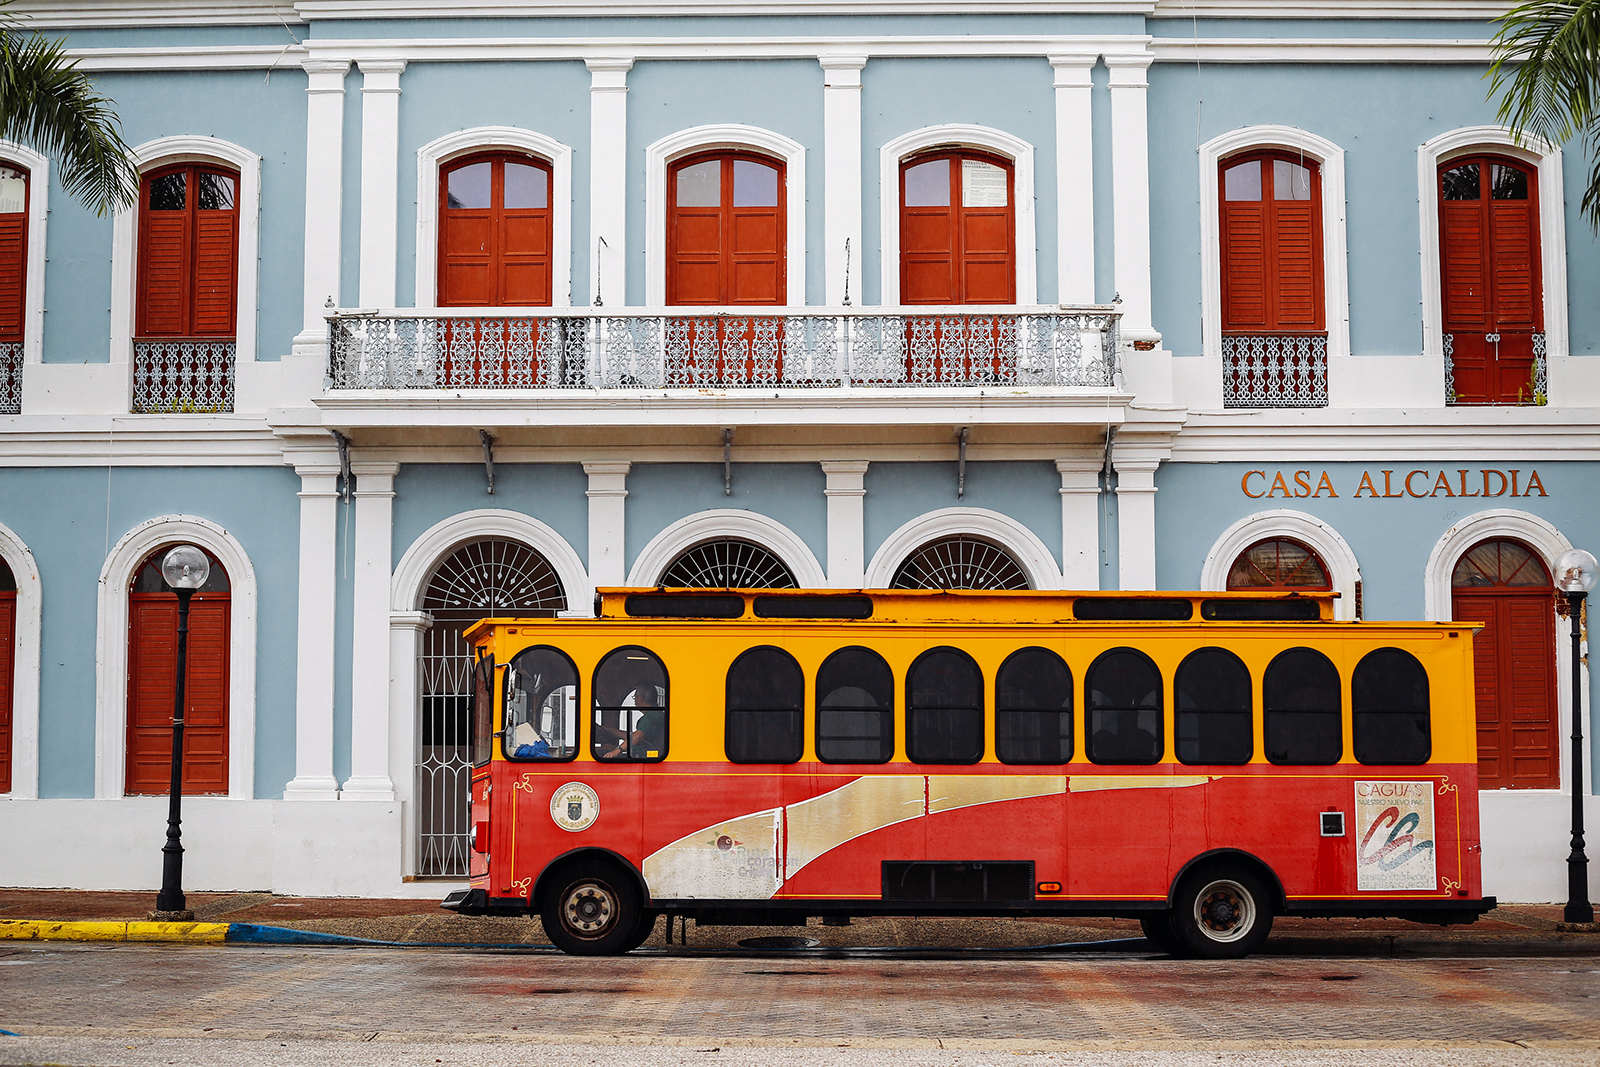 A trolley in front of the mayor's office in Caguas.